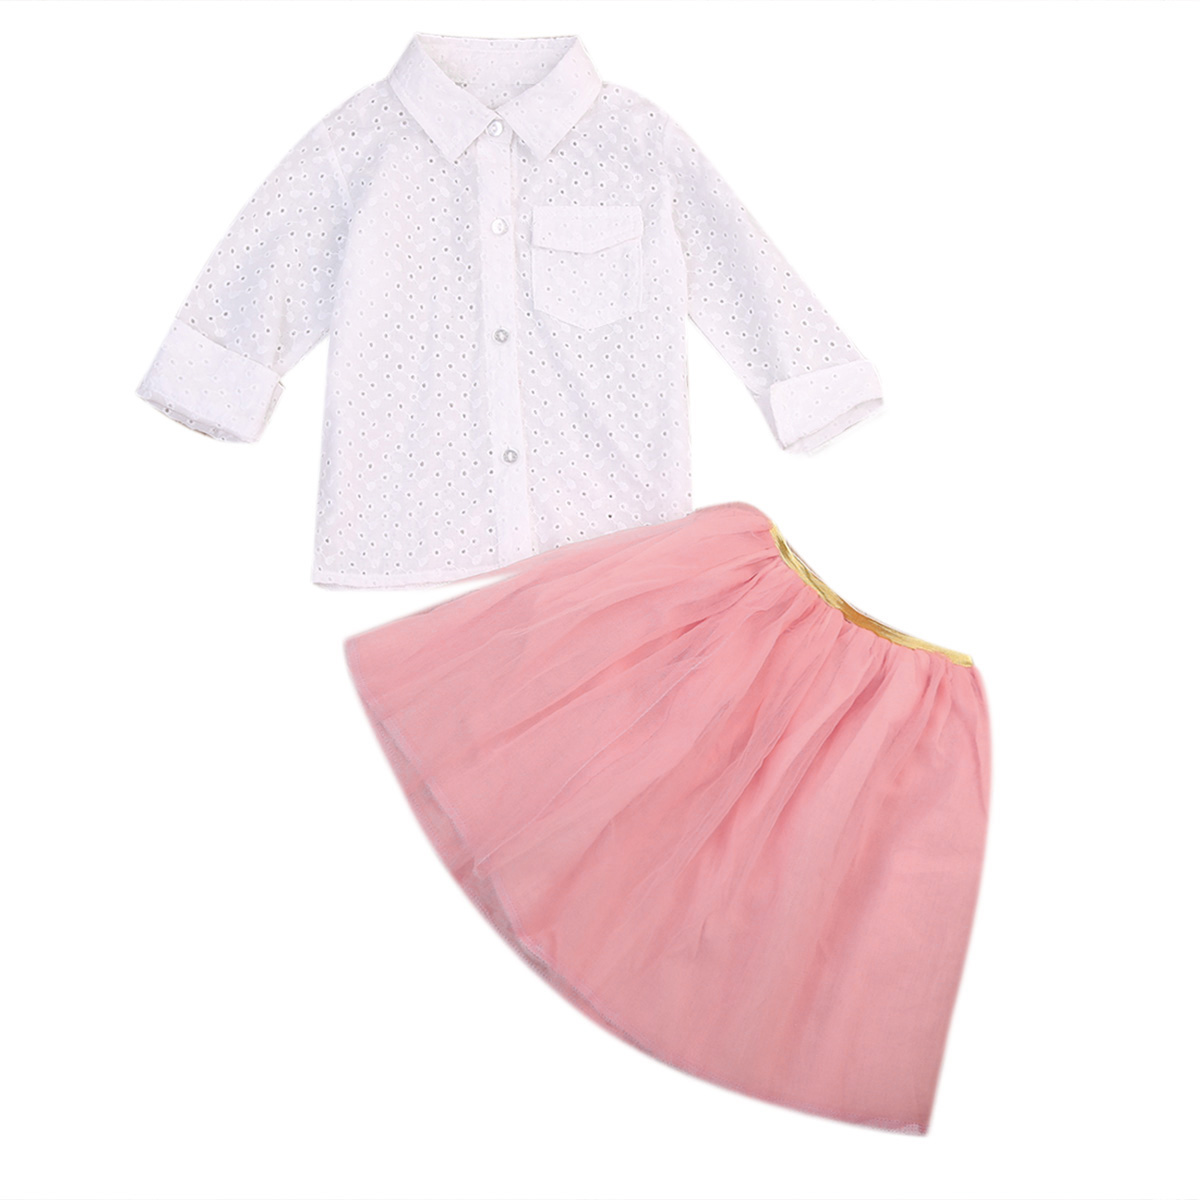 2 to 7T Toddler Kid Baby Girl Clothes Long Sleeve T-shirt Tops Lace Ruffle Mini Tutu Skirt Outfit Baby Clothing Set